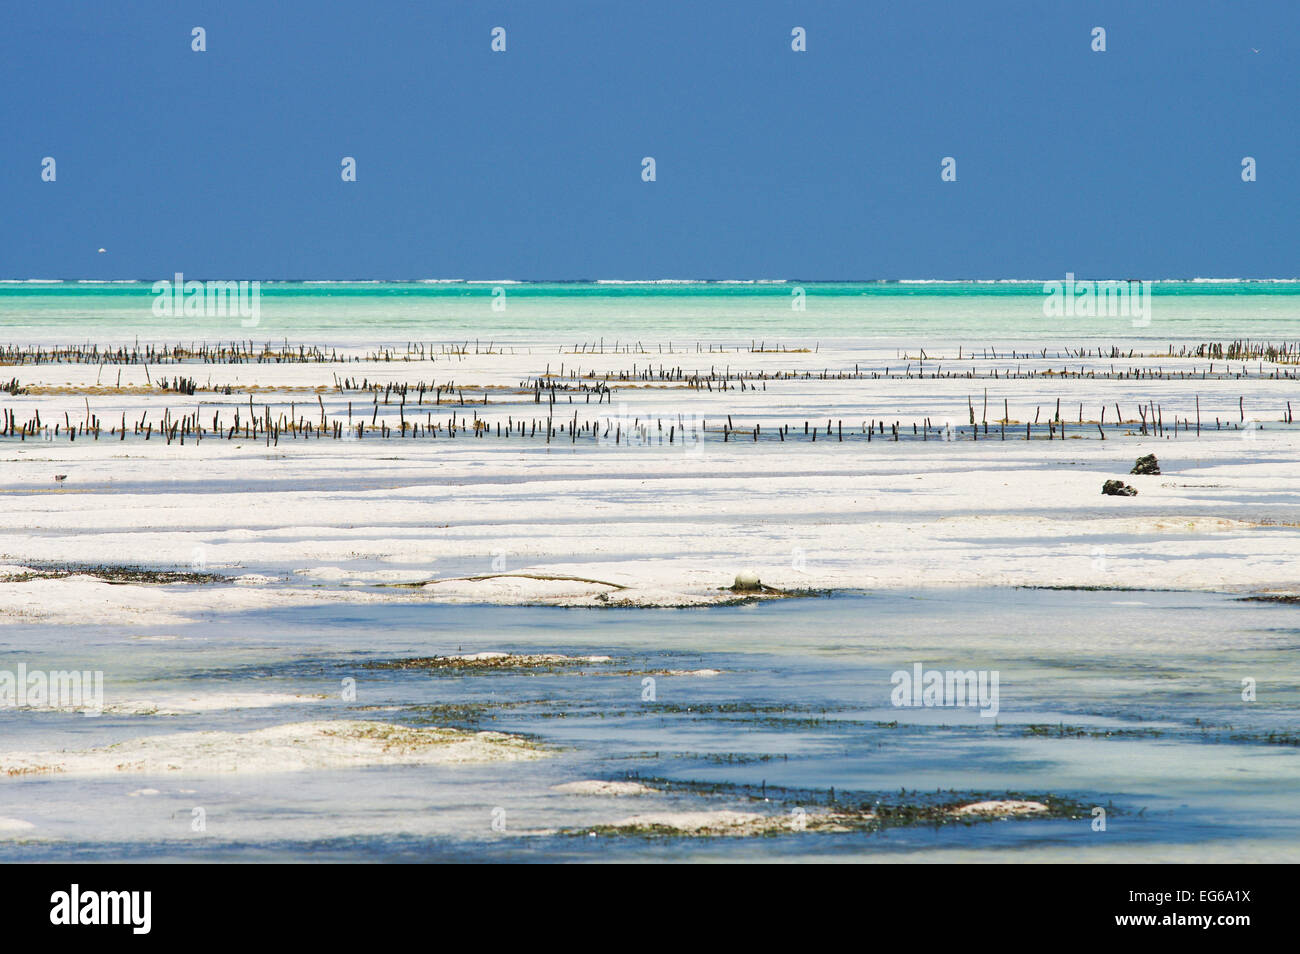 Tidal flats along the east coast of Zanzibar - Stock Image